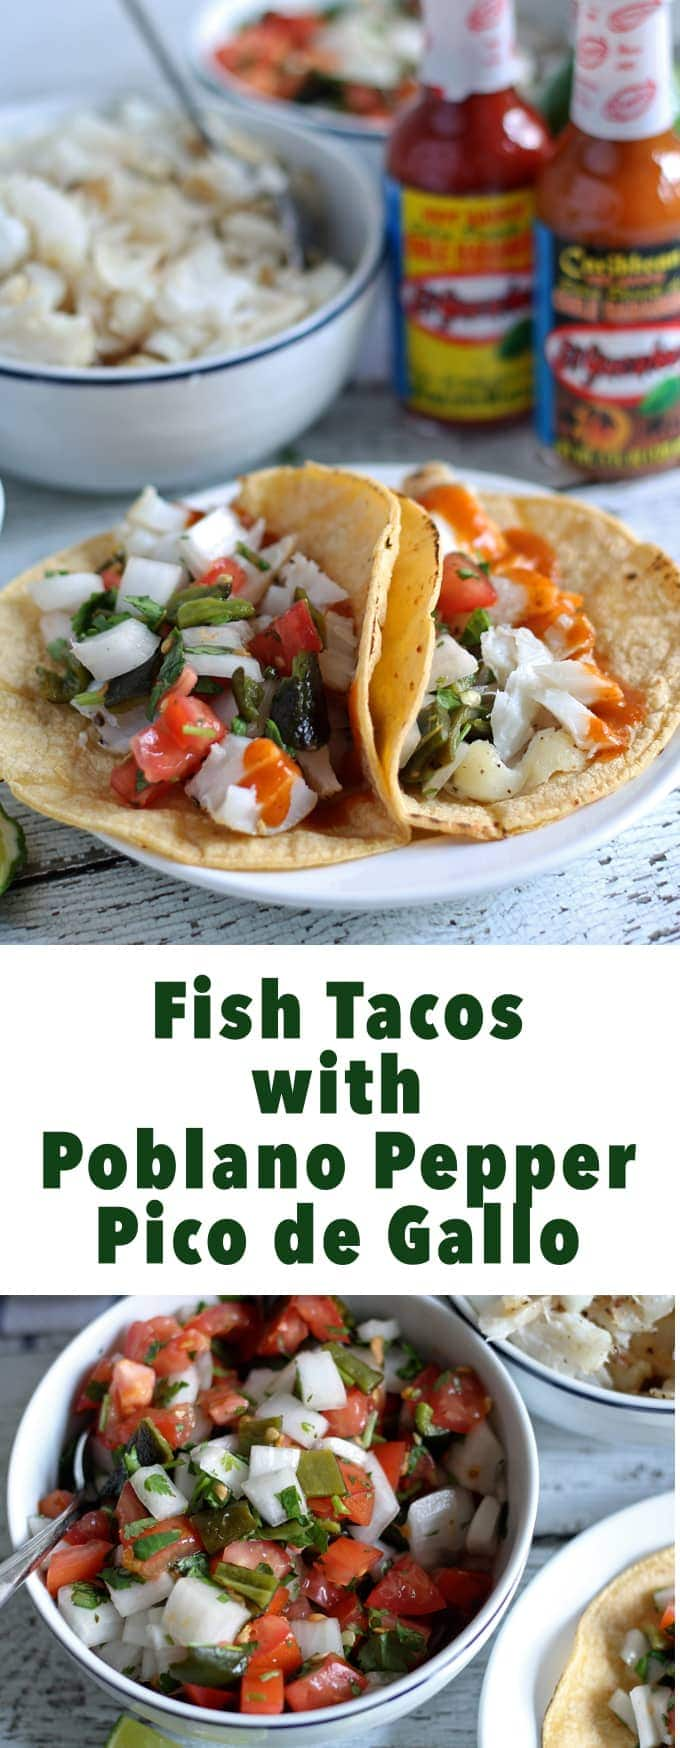 Fish Tacos with Poblano Pepper Pico de Gallo | honeyandbirch.com